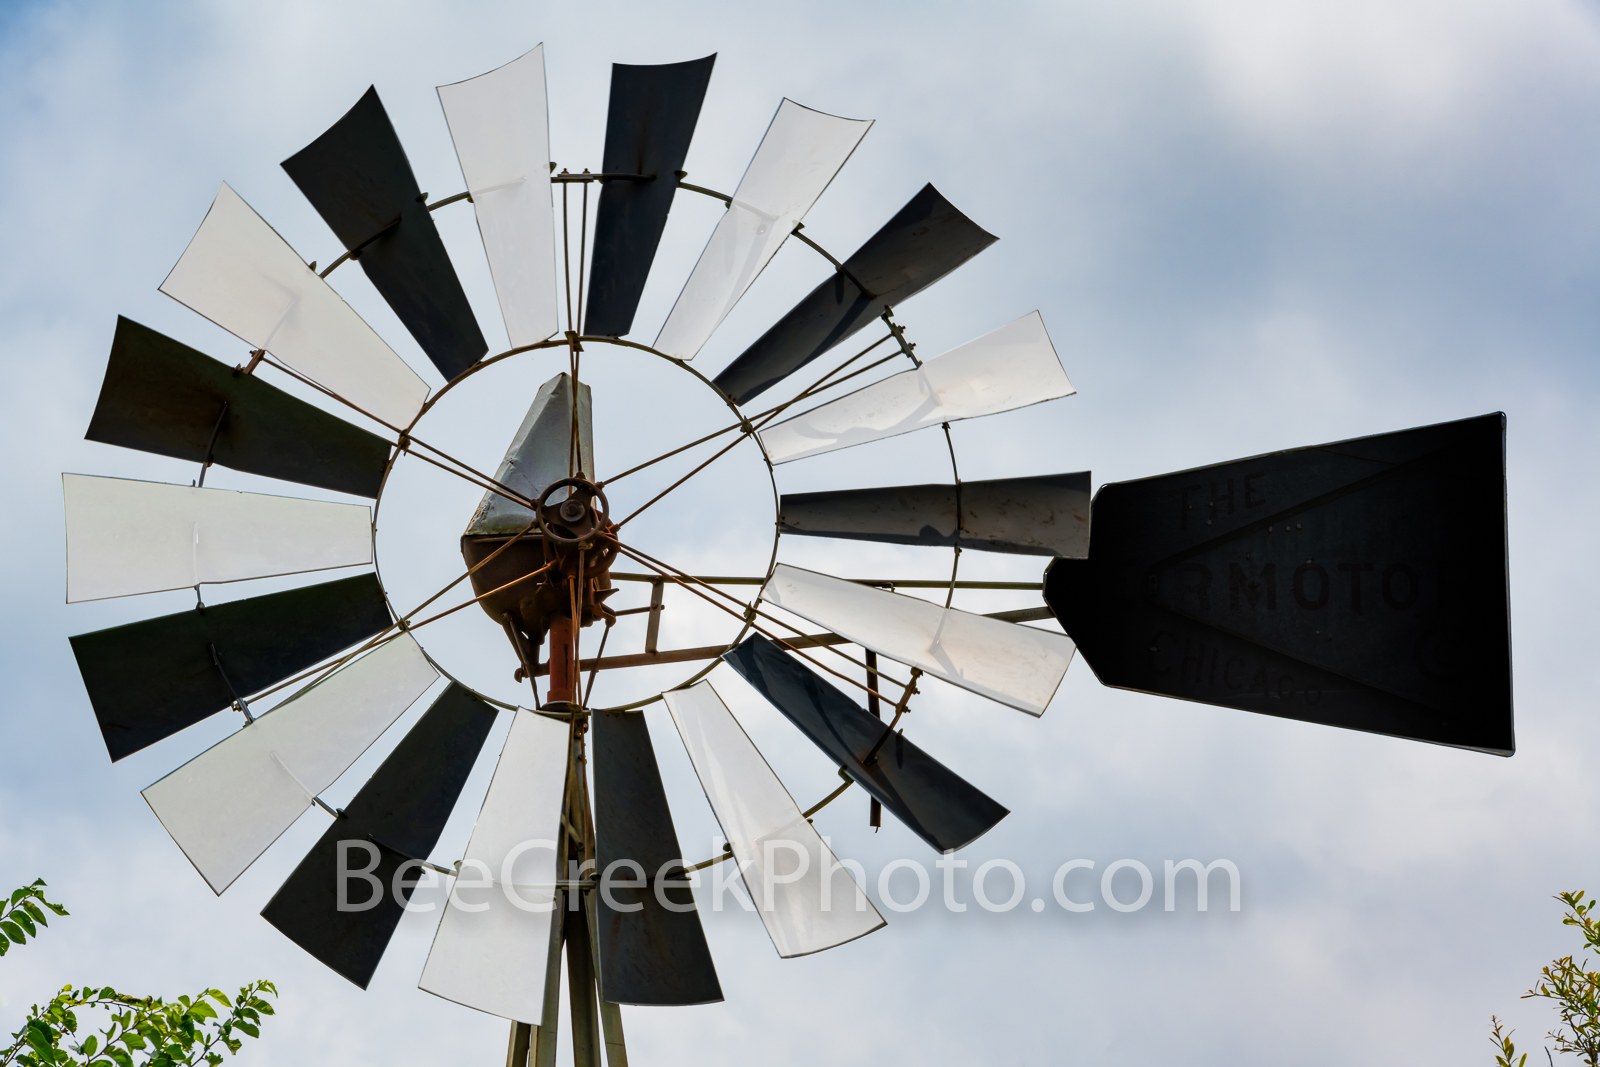 Abstract Black and White Windmill - Ok I love windmills so I am always wanting to stop and capture a few images they take me...